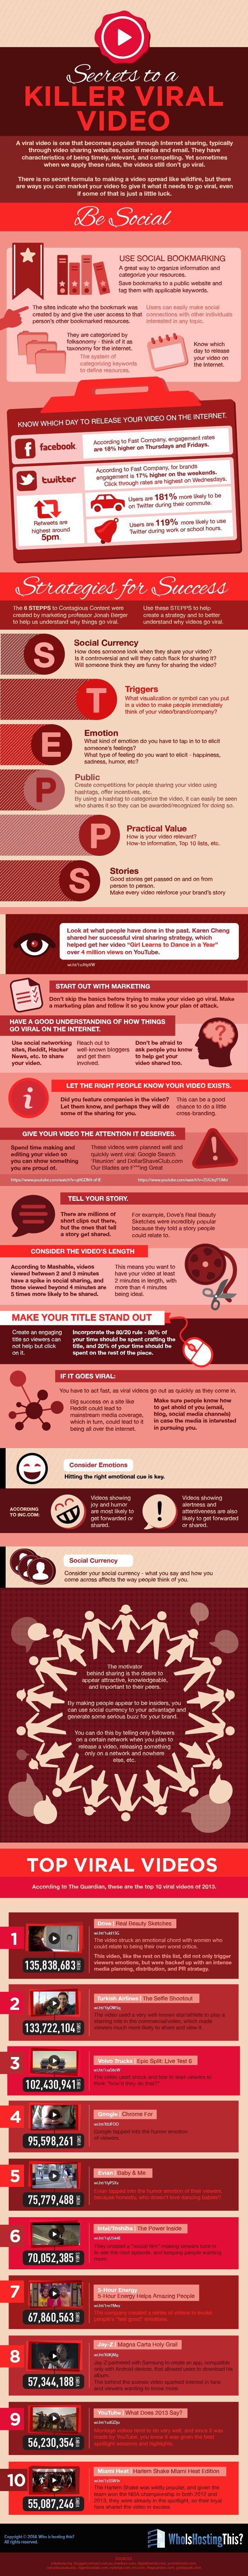 Secrets to a Killer Viral Video [INFOGRAPHIC] - @socialmedia2day